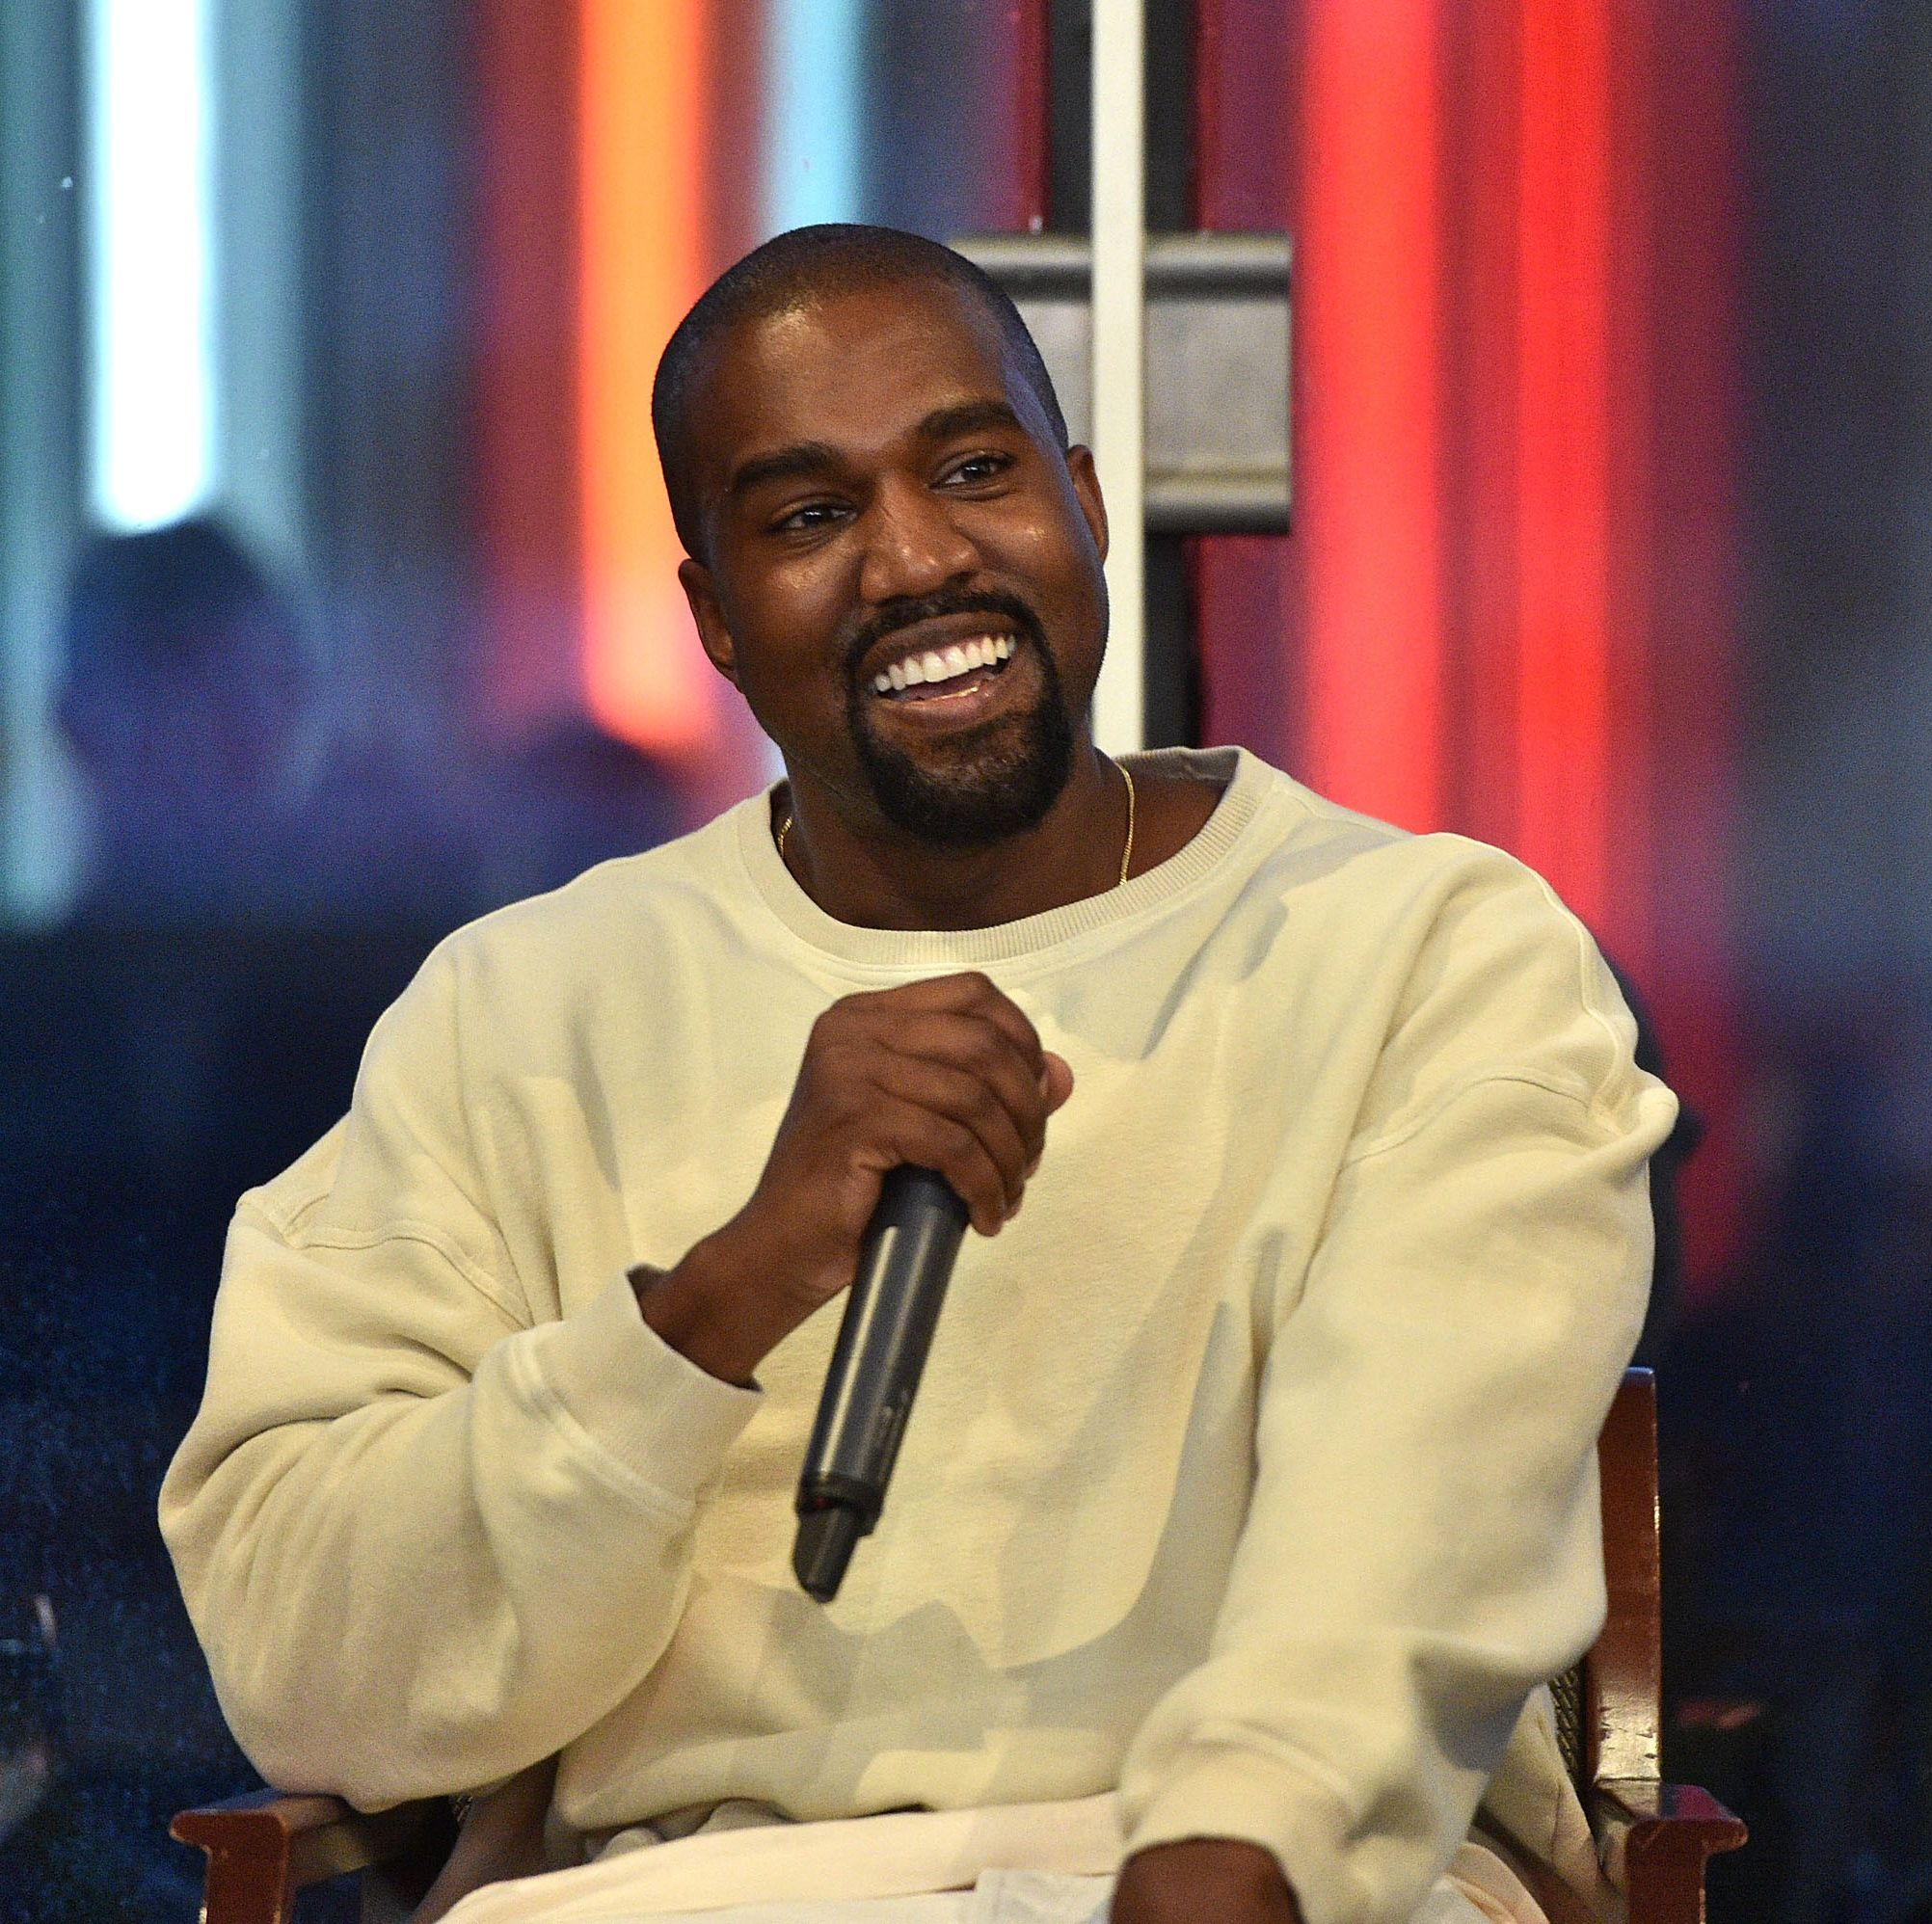 Kanye West Is Collaborating With Gap In 2020 Kanye West Interview Kanye West Kanye